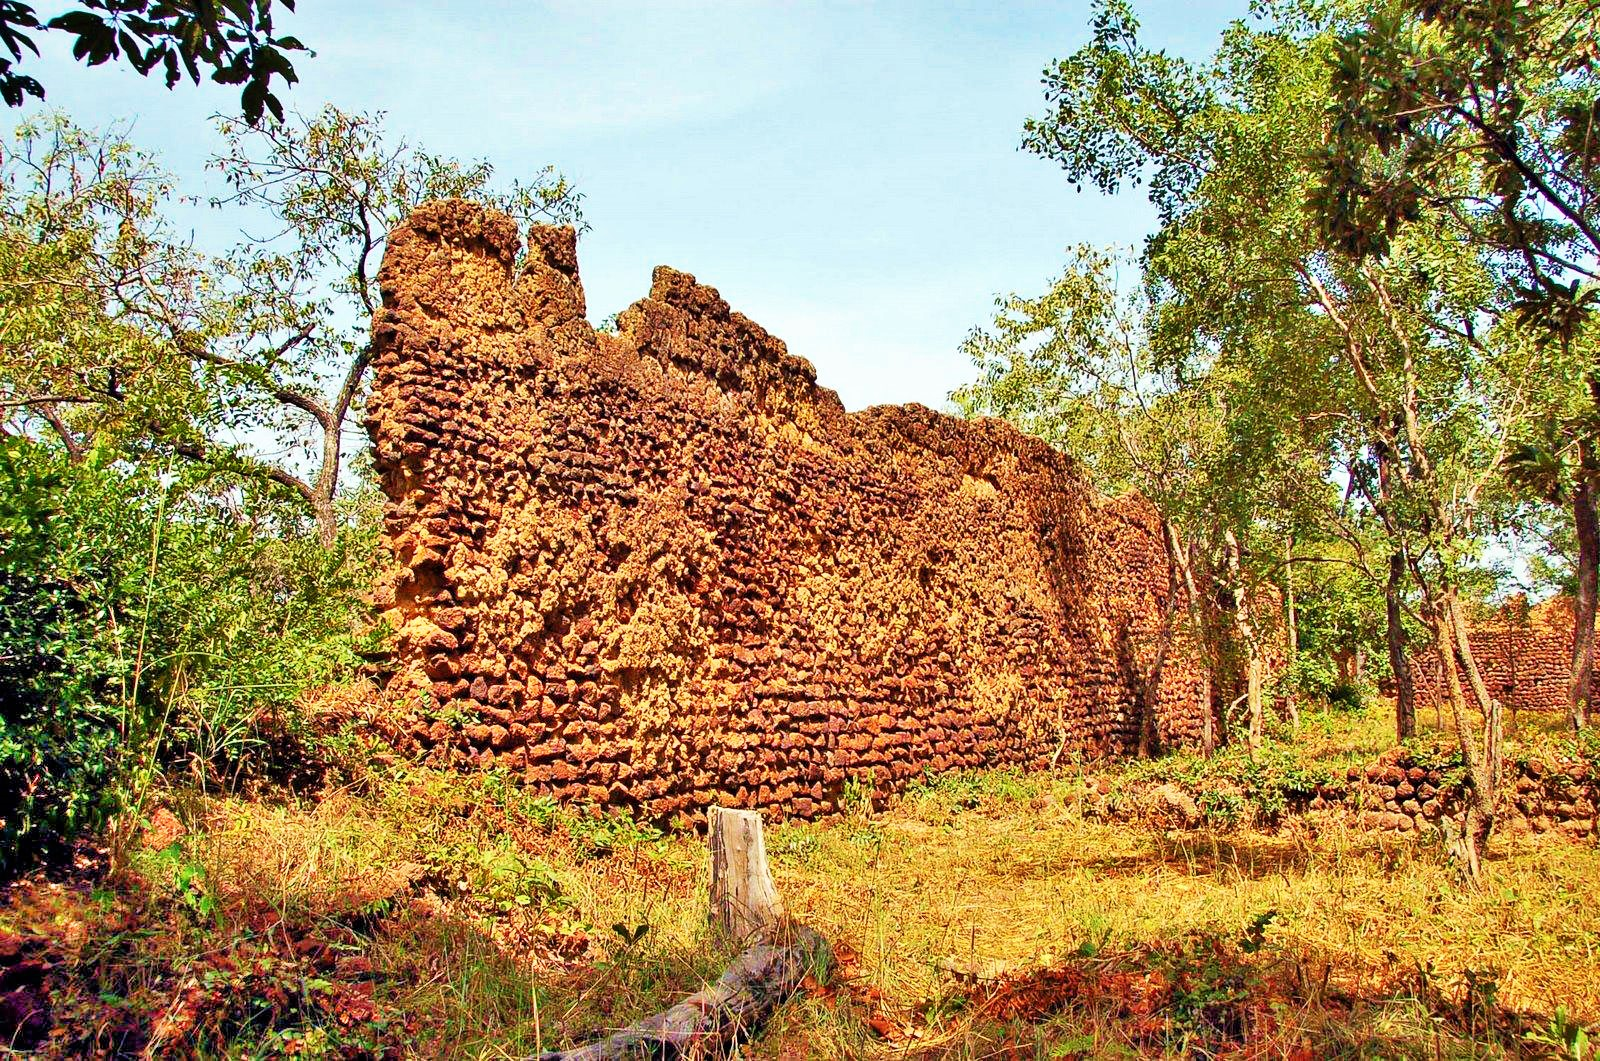 The Loropeni Ruins In Burkina Faso 05